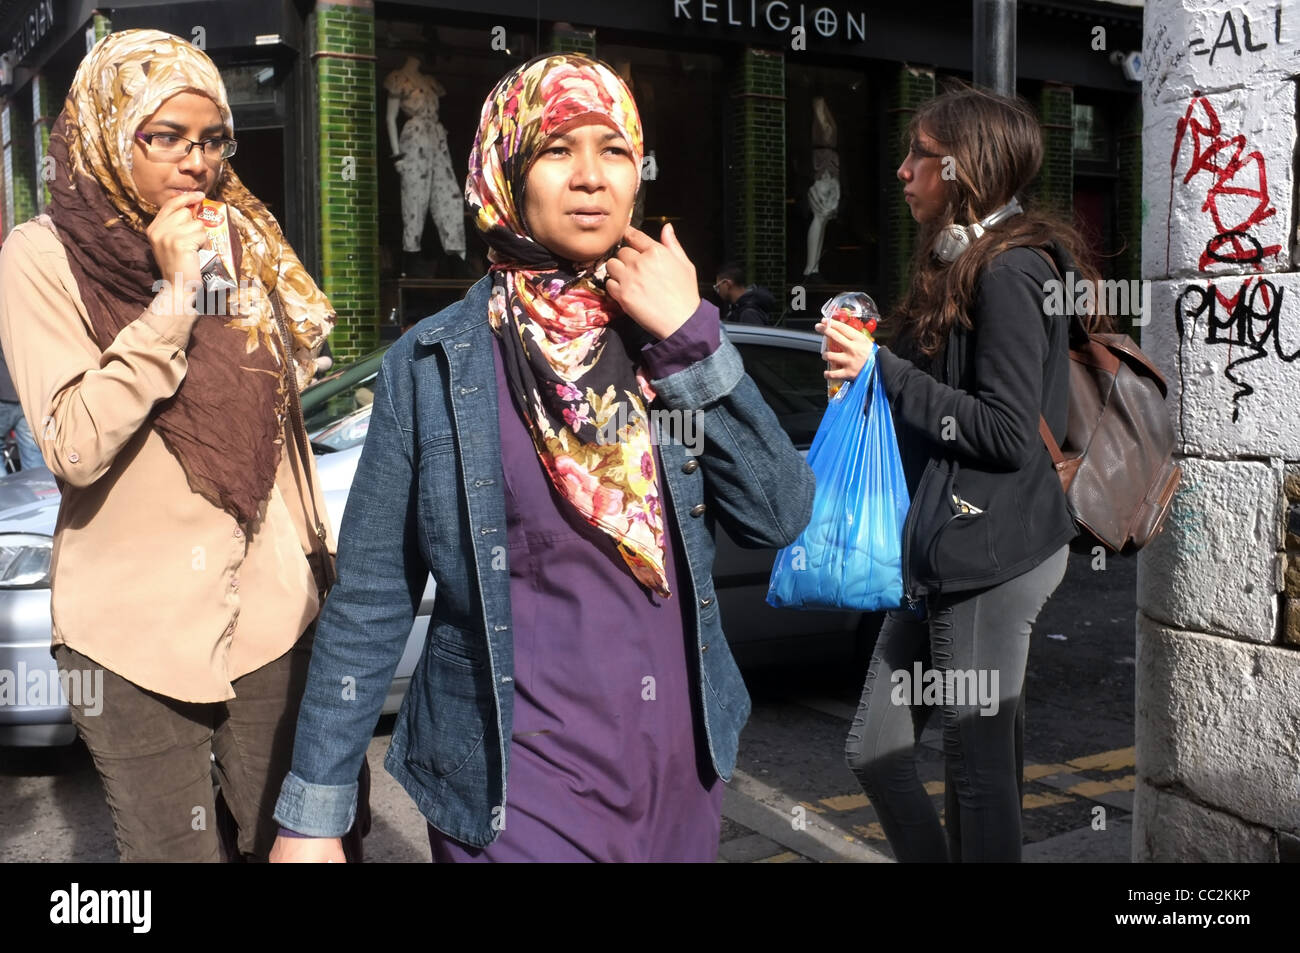 Two young Muslim women, in head scarves, walk along Brick Lane, in London's historic East End. - Stock Image